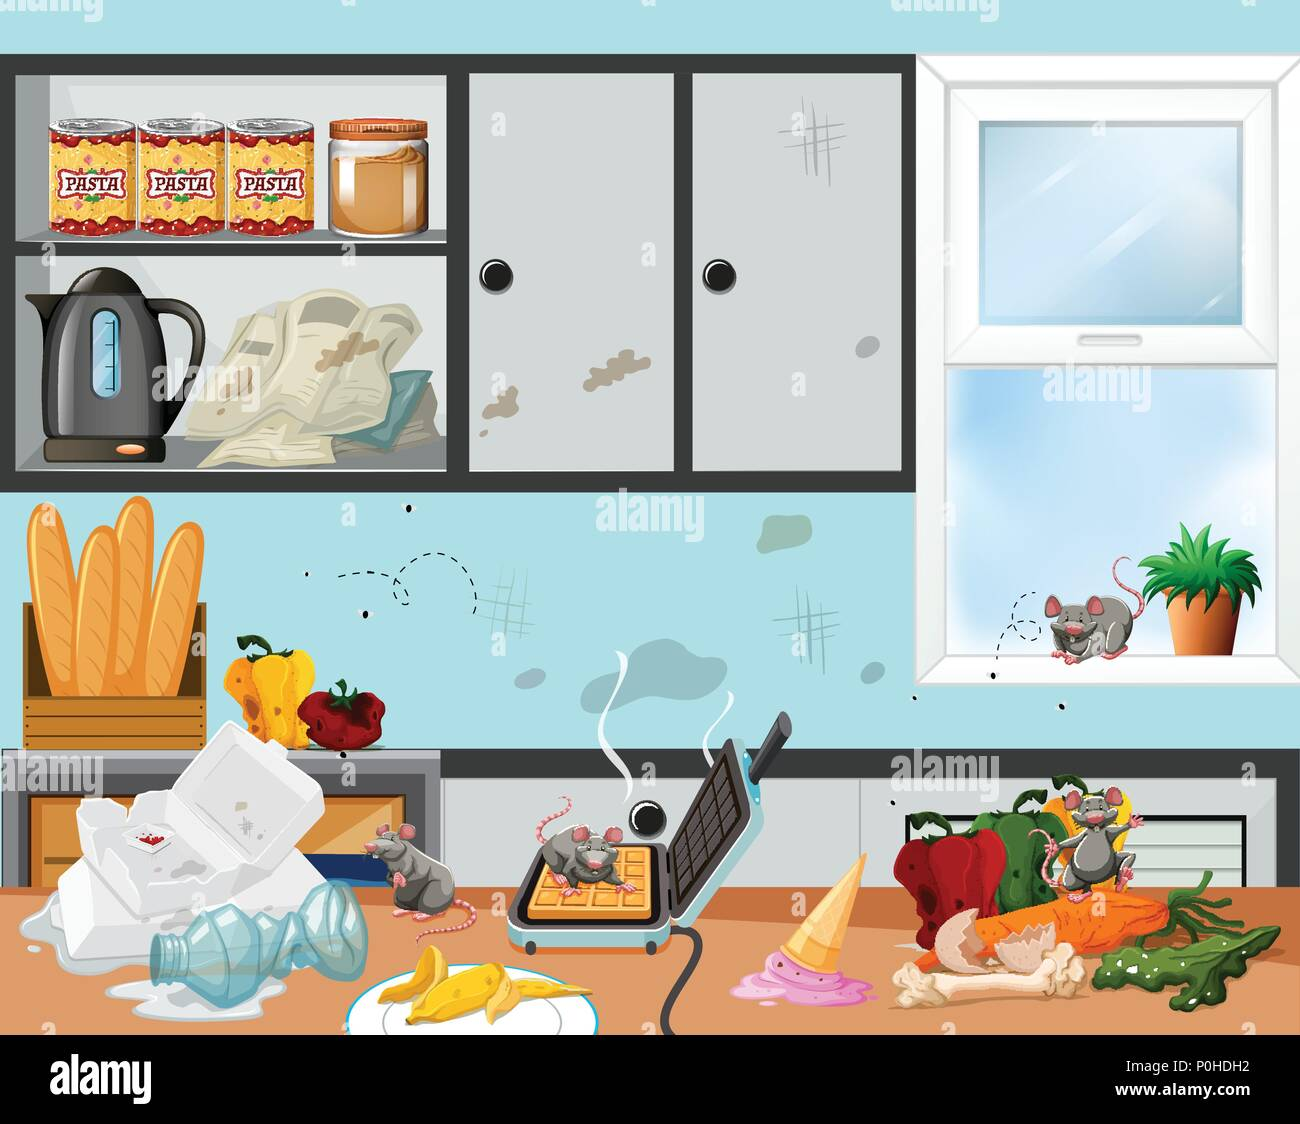 Messy Kitchen Stock Vector Images - Alamy